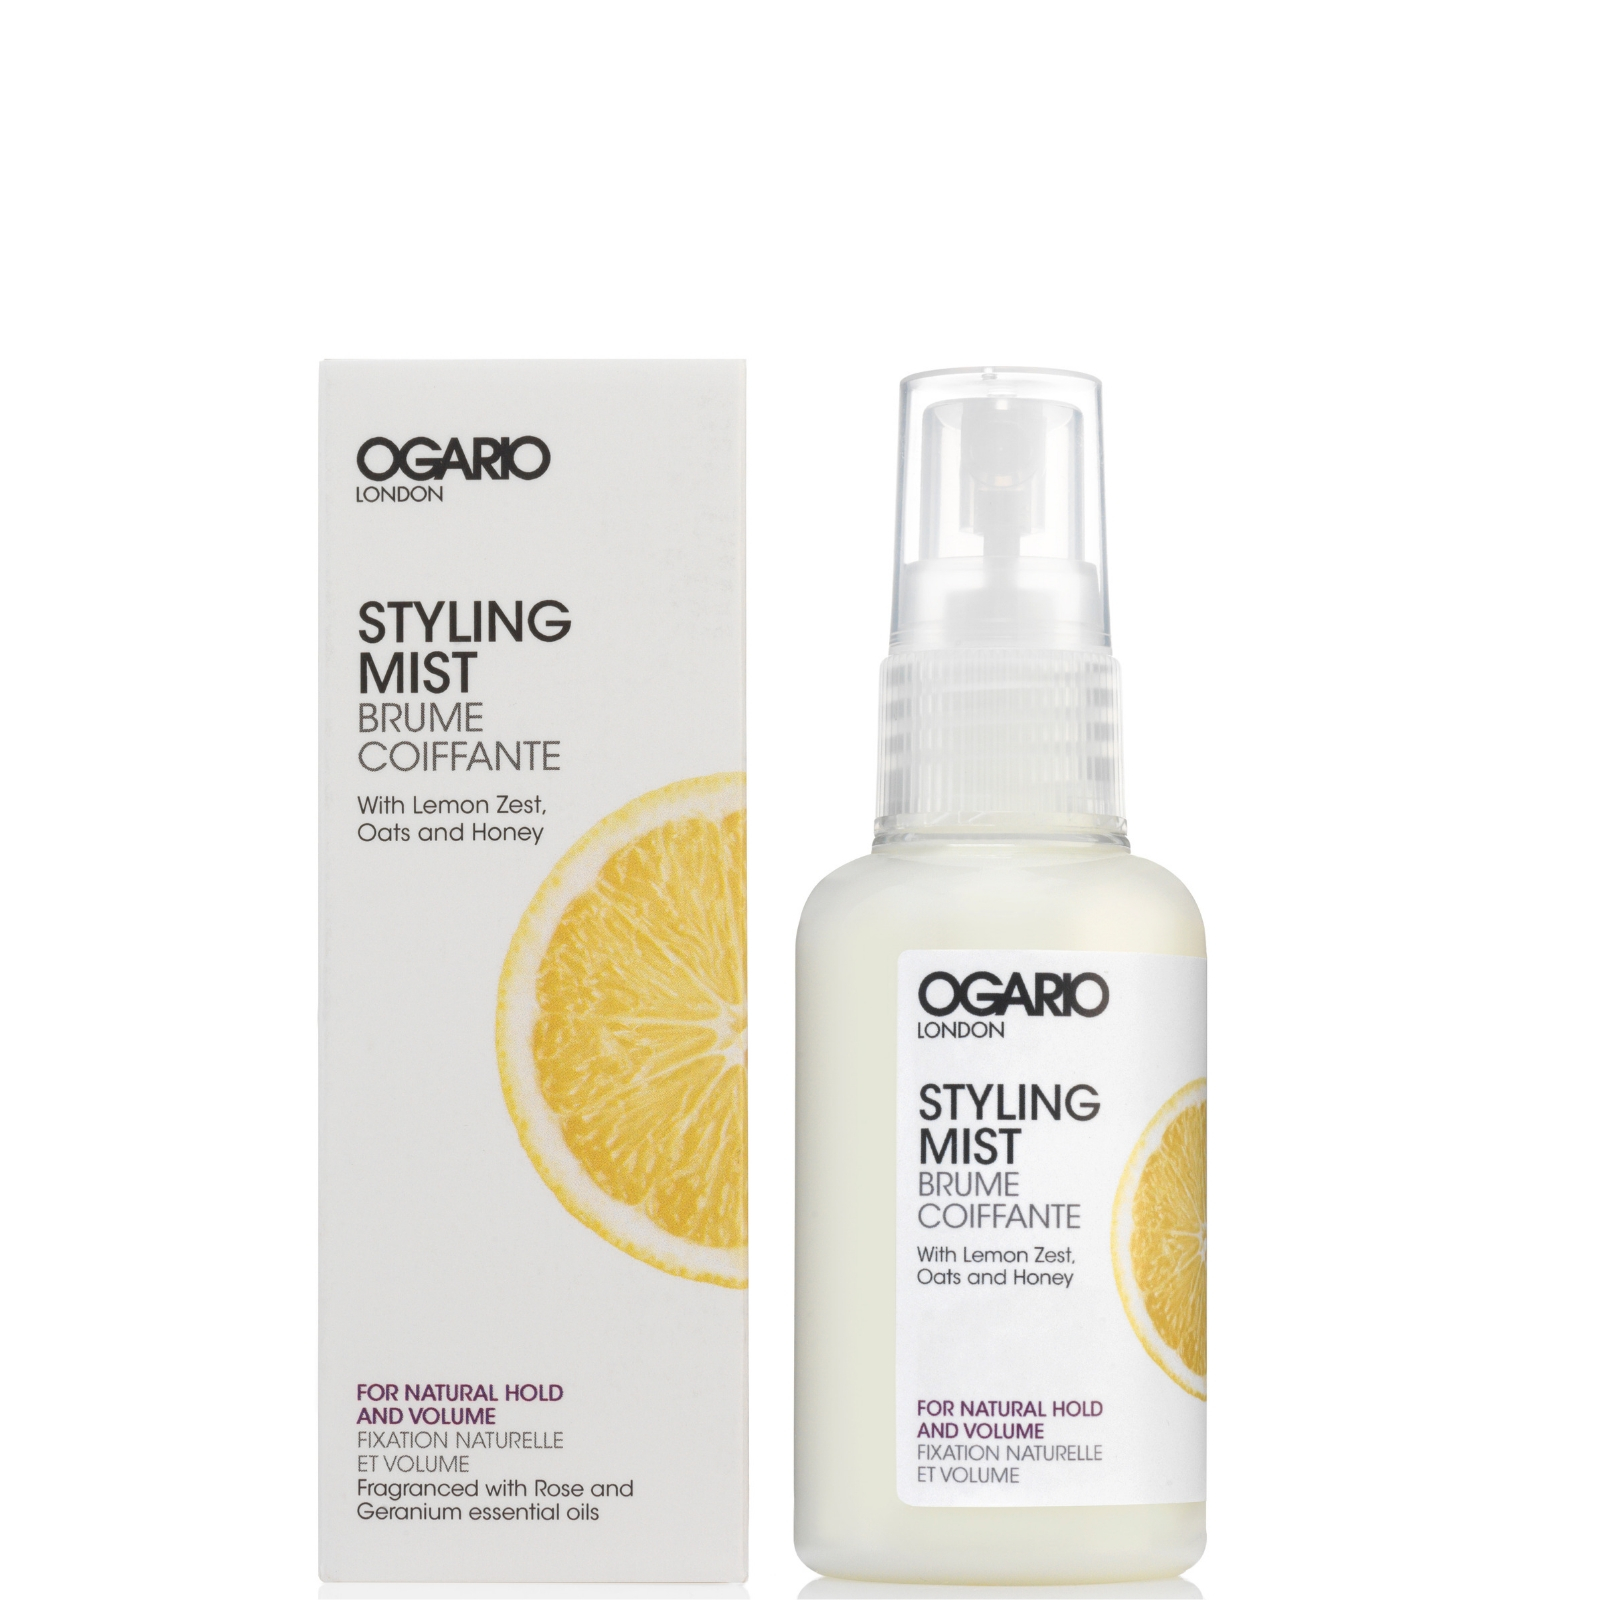 bottle of ogario styling mist volume with box on white background